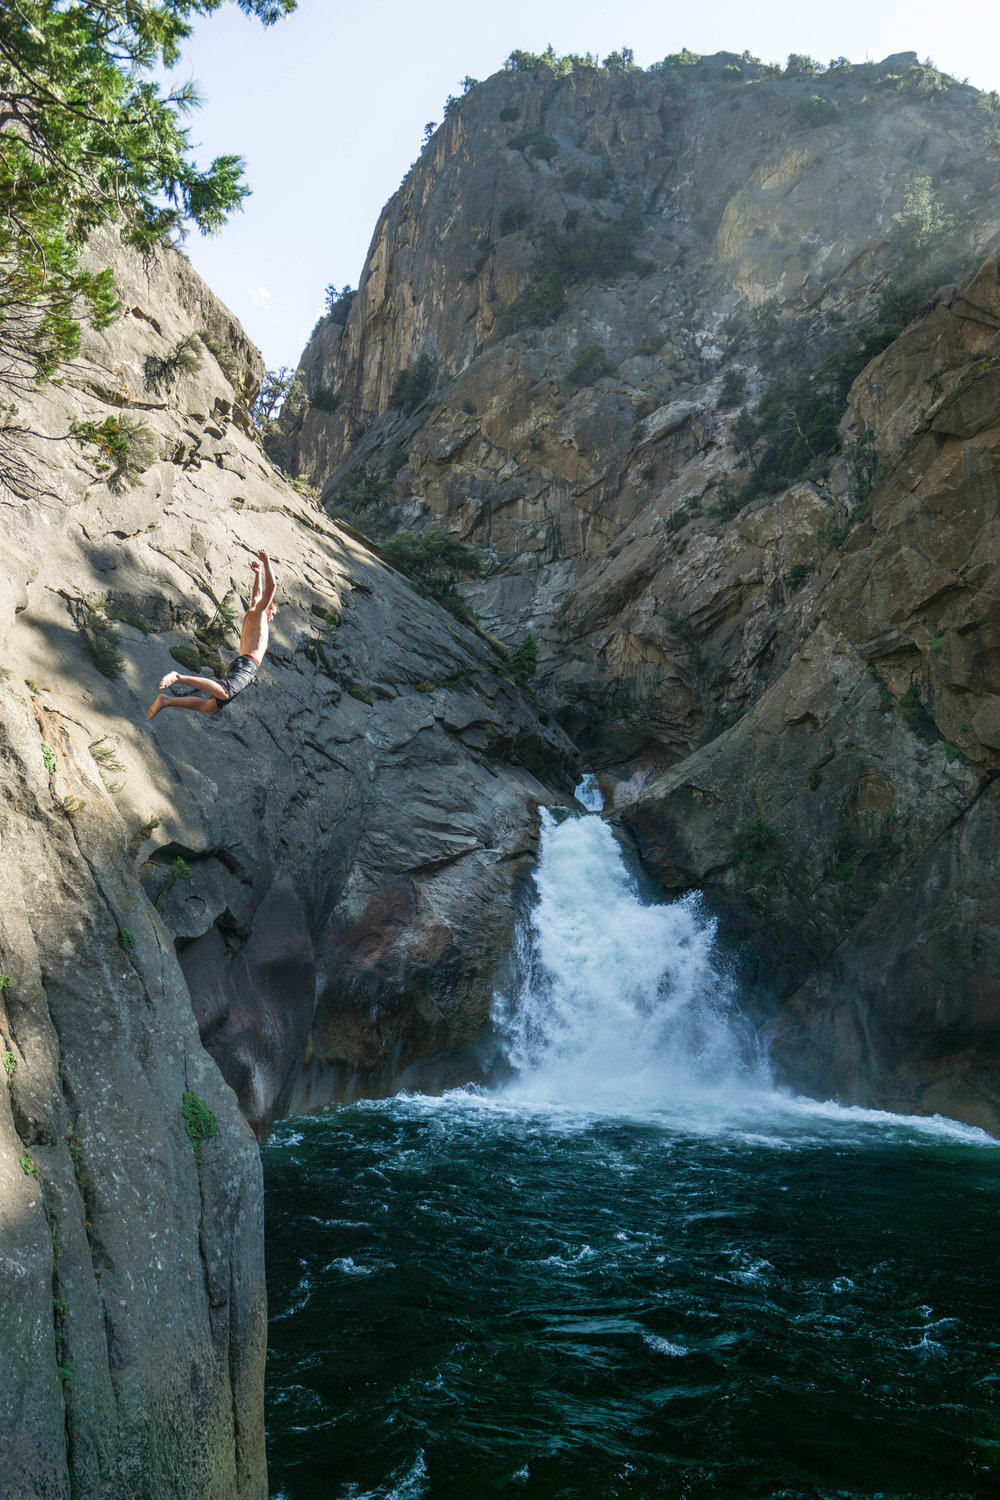 Jump after jump, we leap into the icy waters amid the torrent sound of the falls.